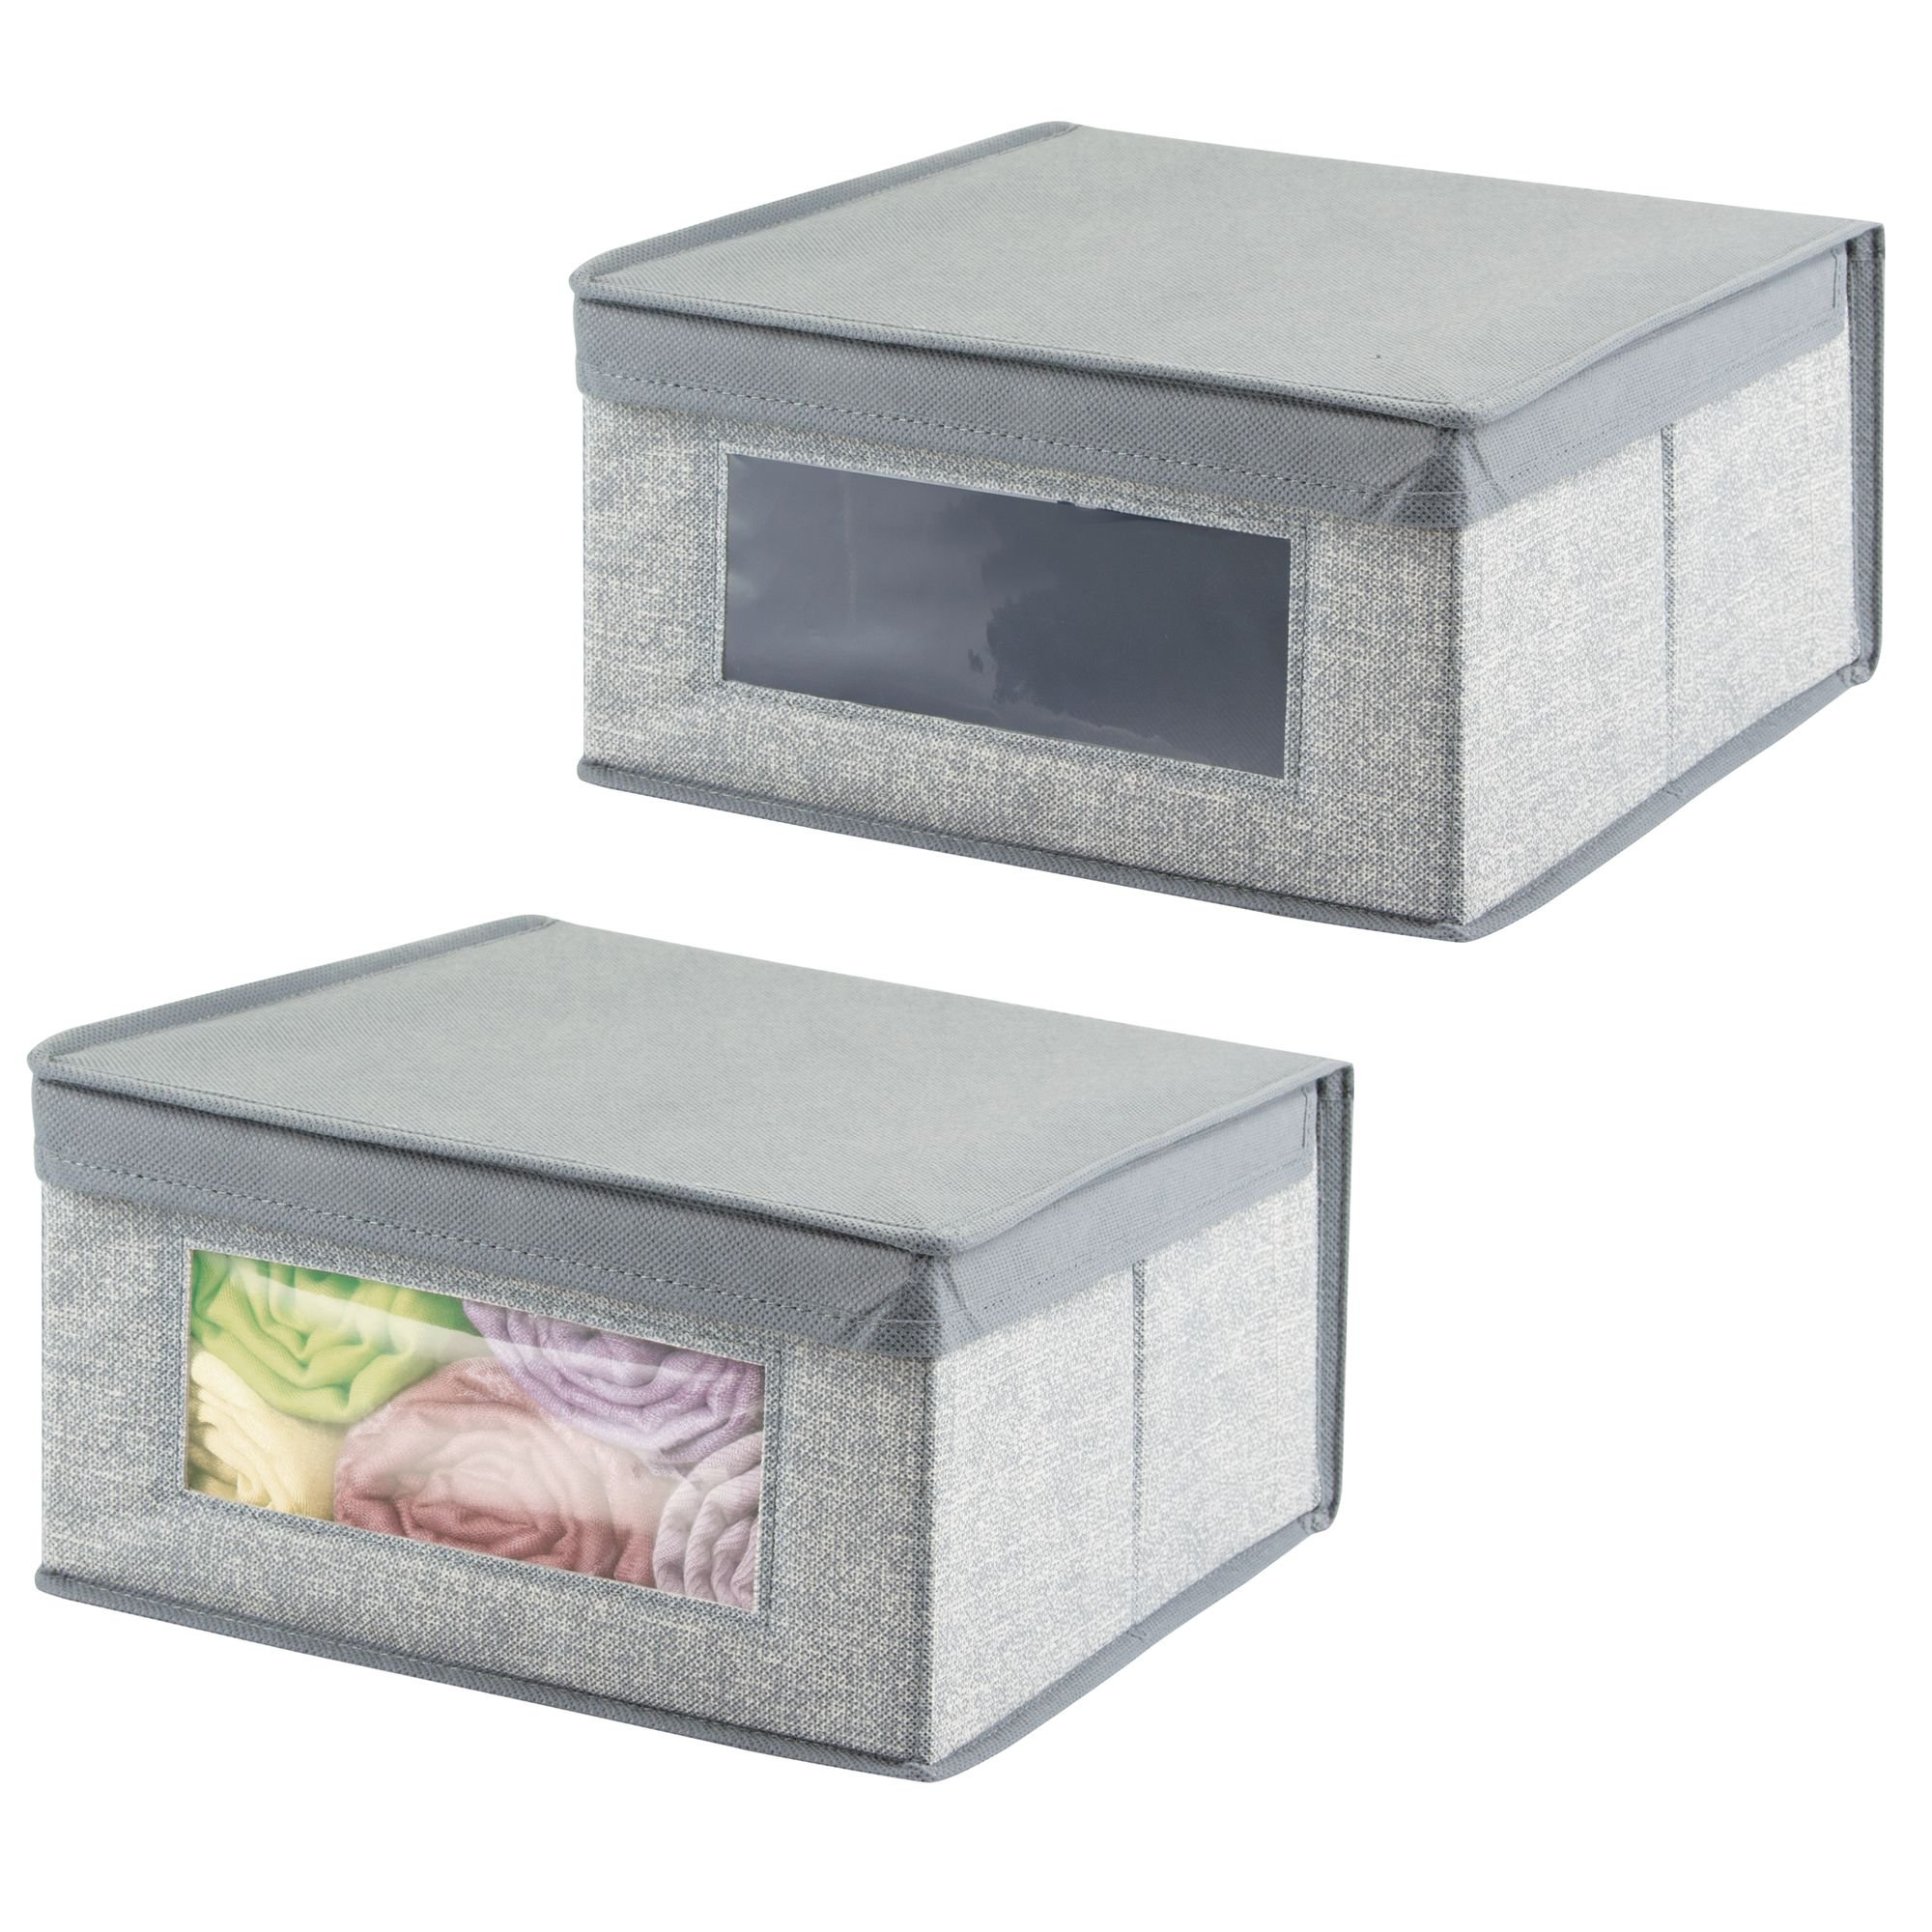 mDesign Soft Stackable Fabric Closet Storage Organizer Holder Bin with Clear Window, Attached Hinged Lid - for Bedroom, Hallway, Entryway, Bathroom - Textured Pattern - Medium, 2 Pack - Gray